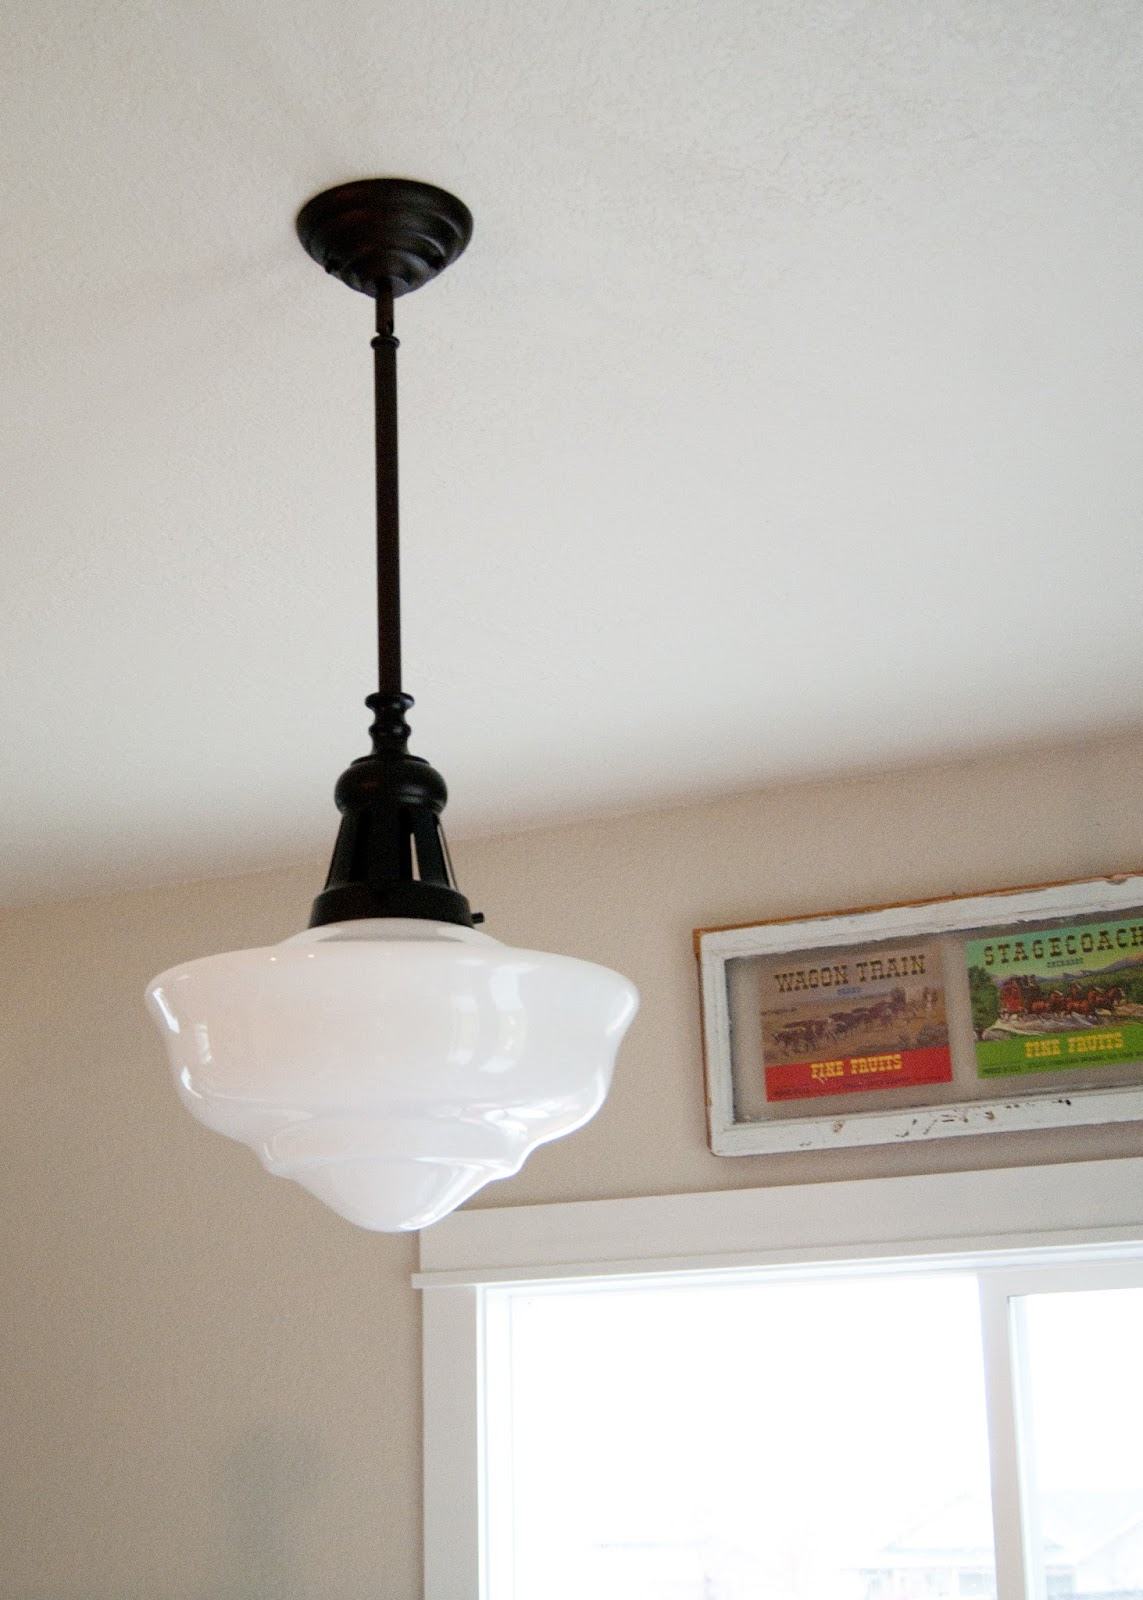 Vintage inspired schoolhouse light in the dining room